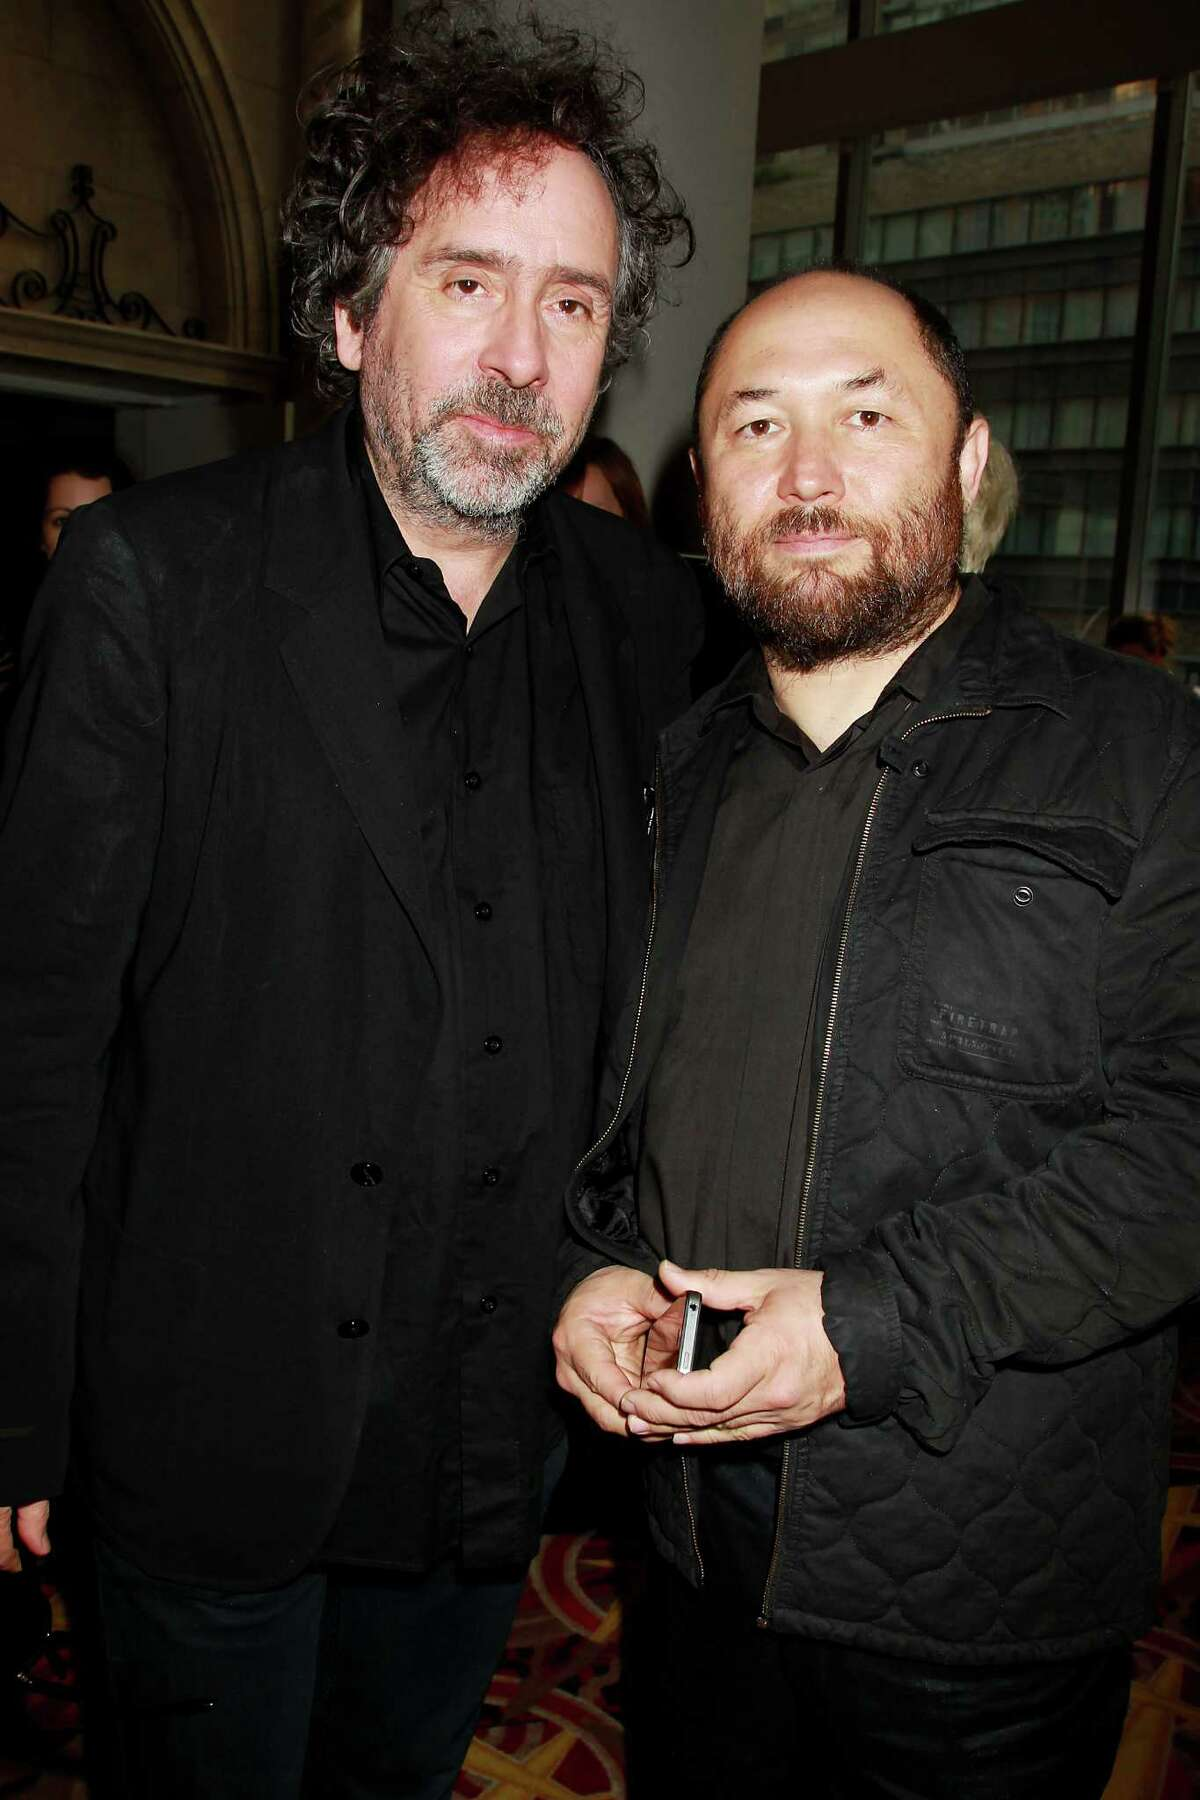 This image released by Starpix shows producer Tim Burton, left, and director Timur Bekmambetov at the premiere of Twentieth Century Fox film,